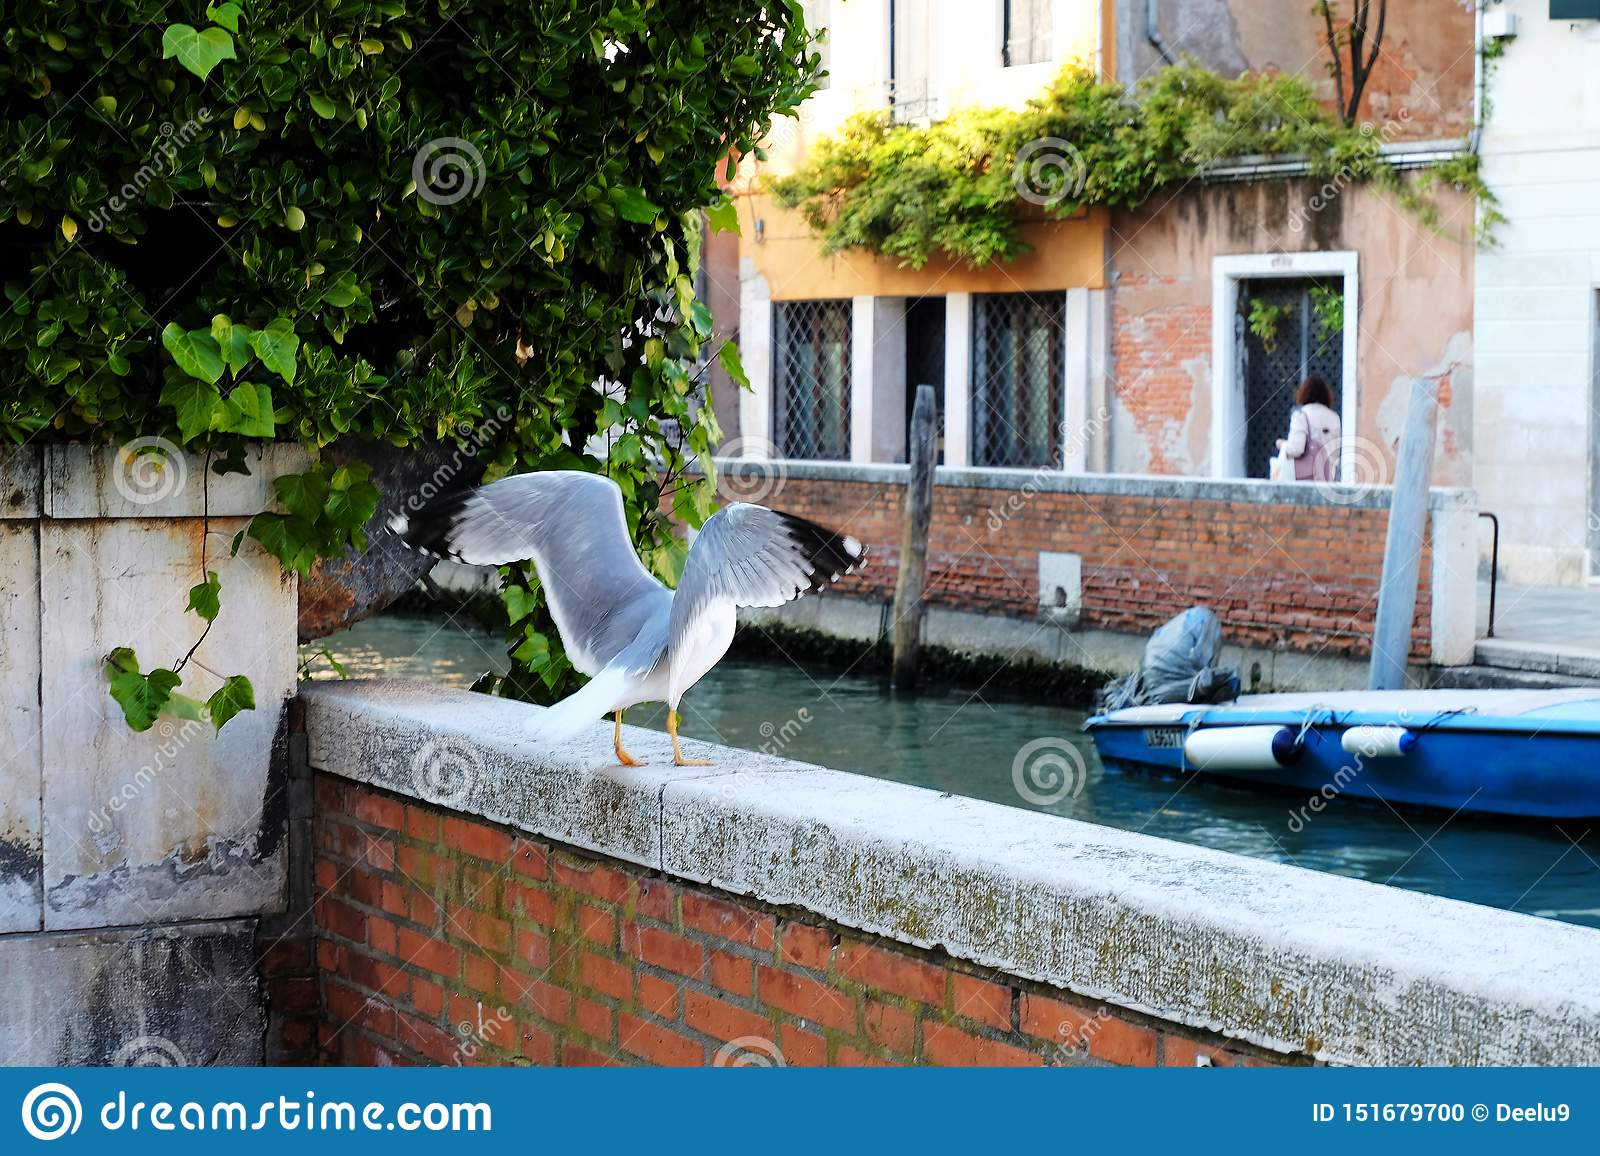 Bird in Venice, Italy getting up for a flight